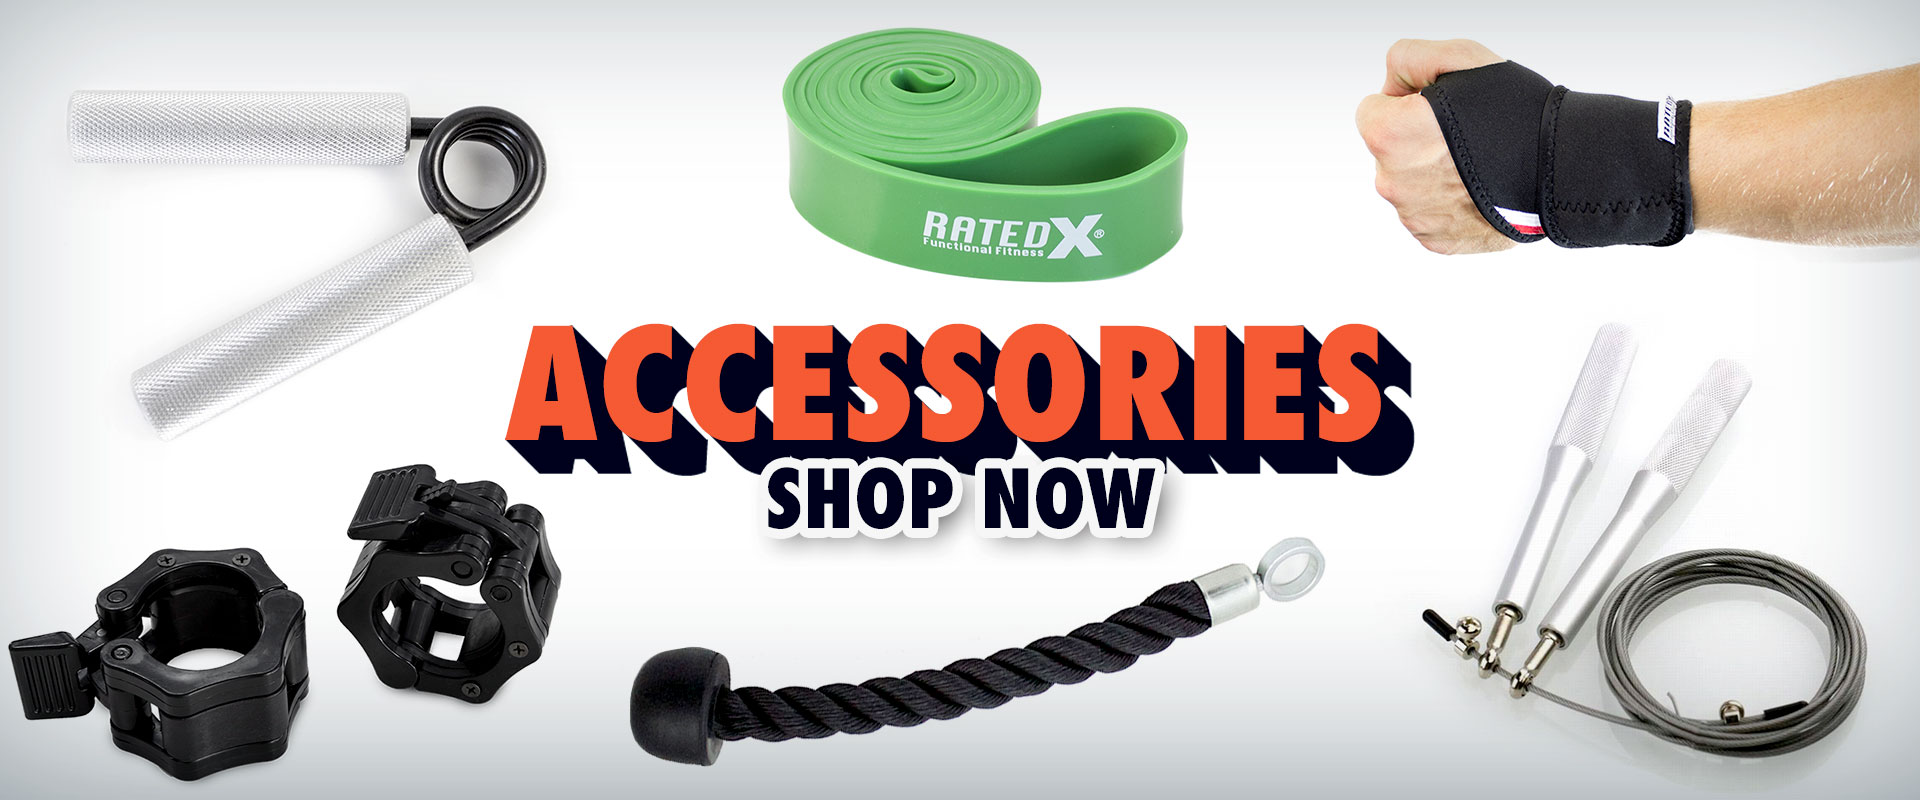 accessories-shop-now